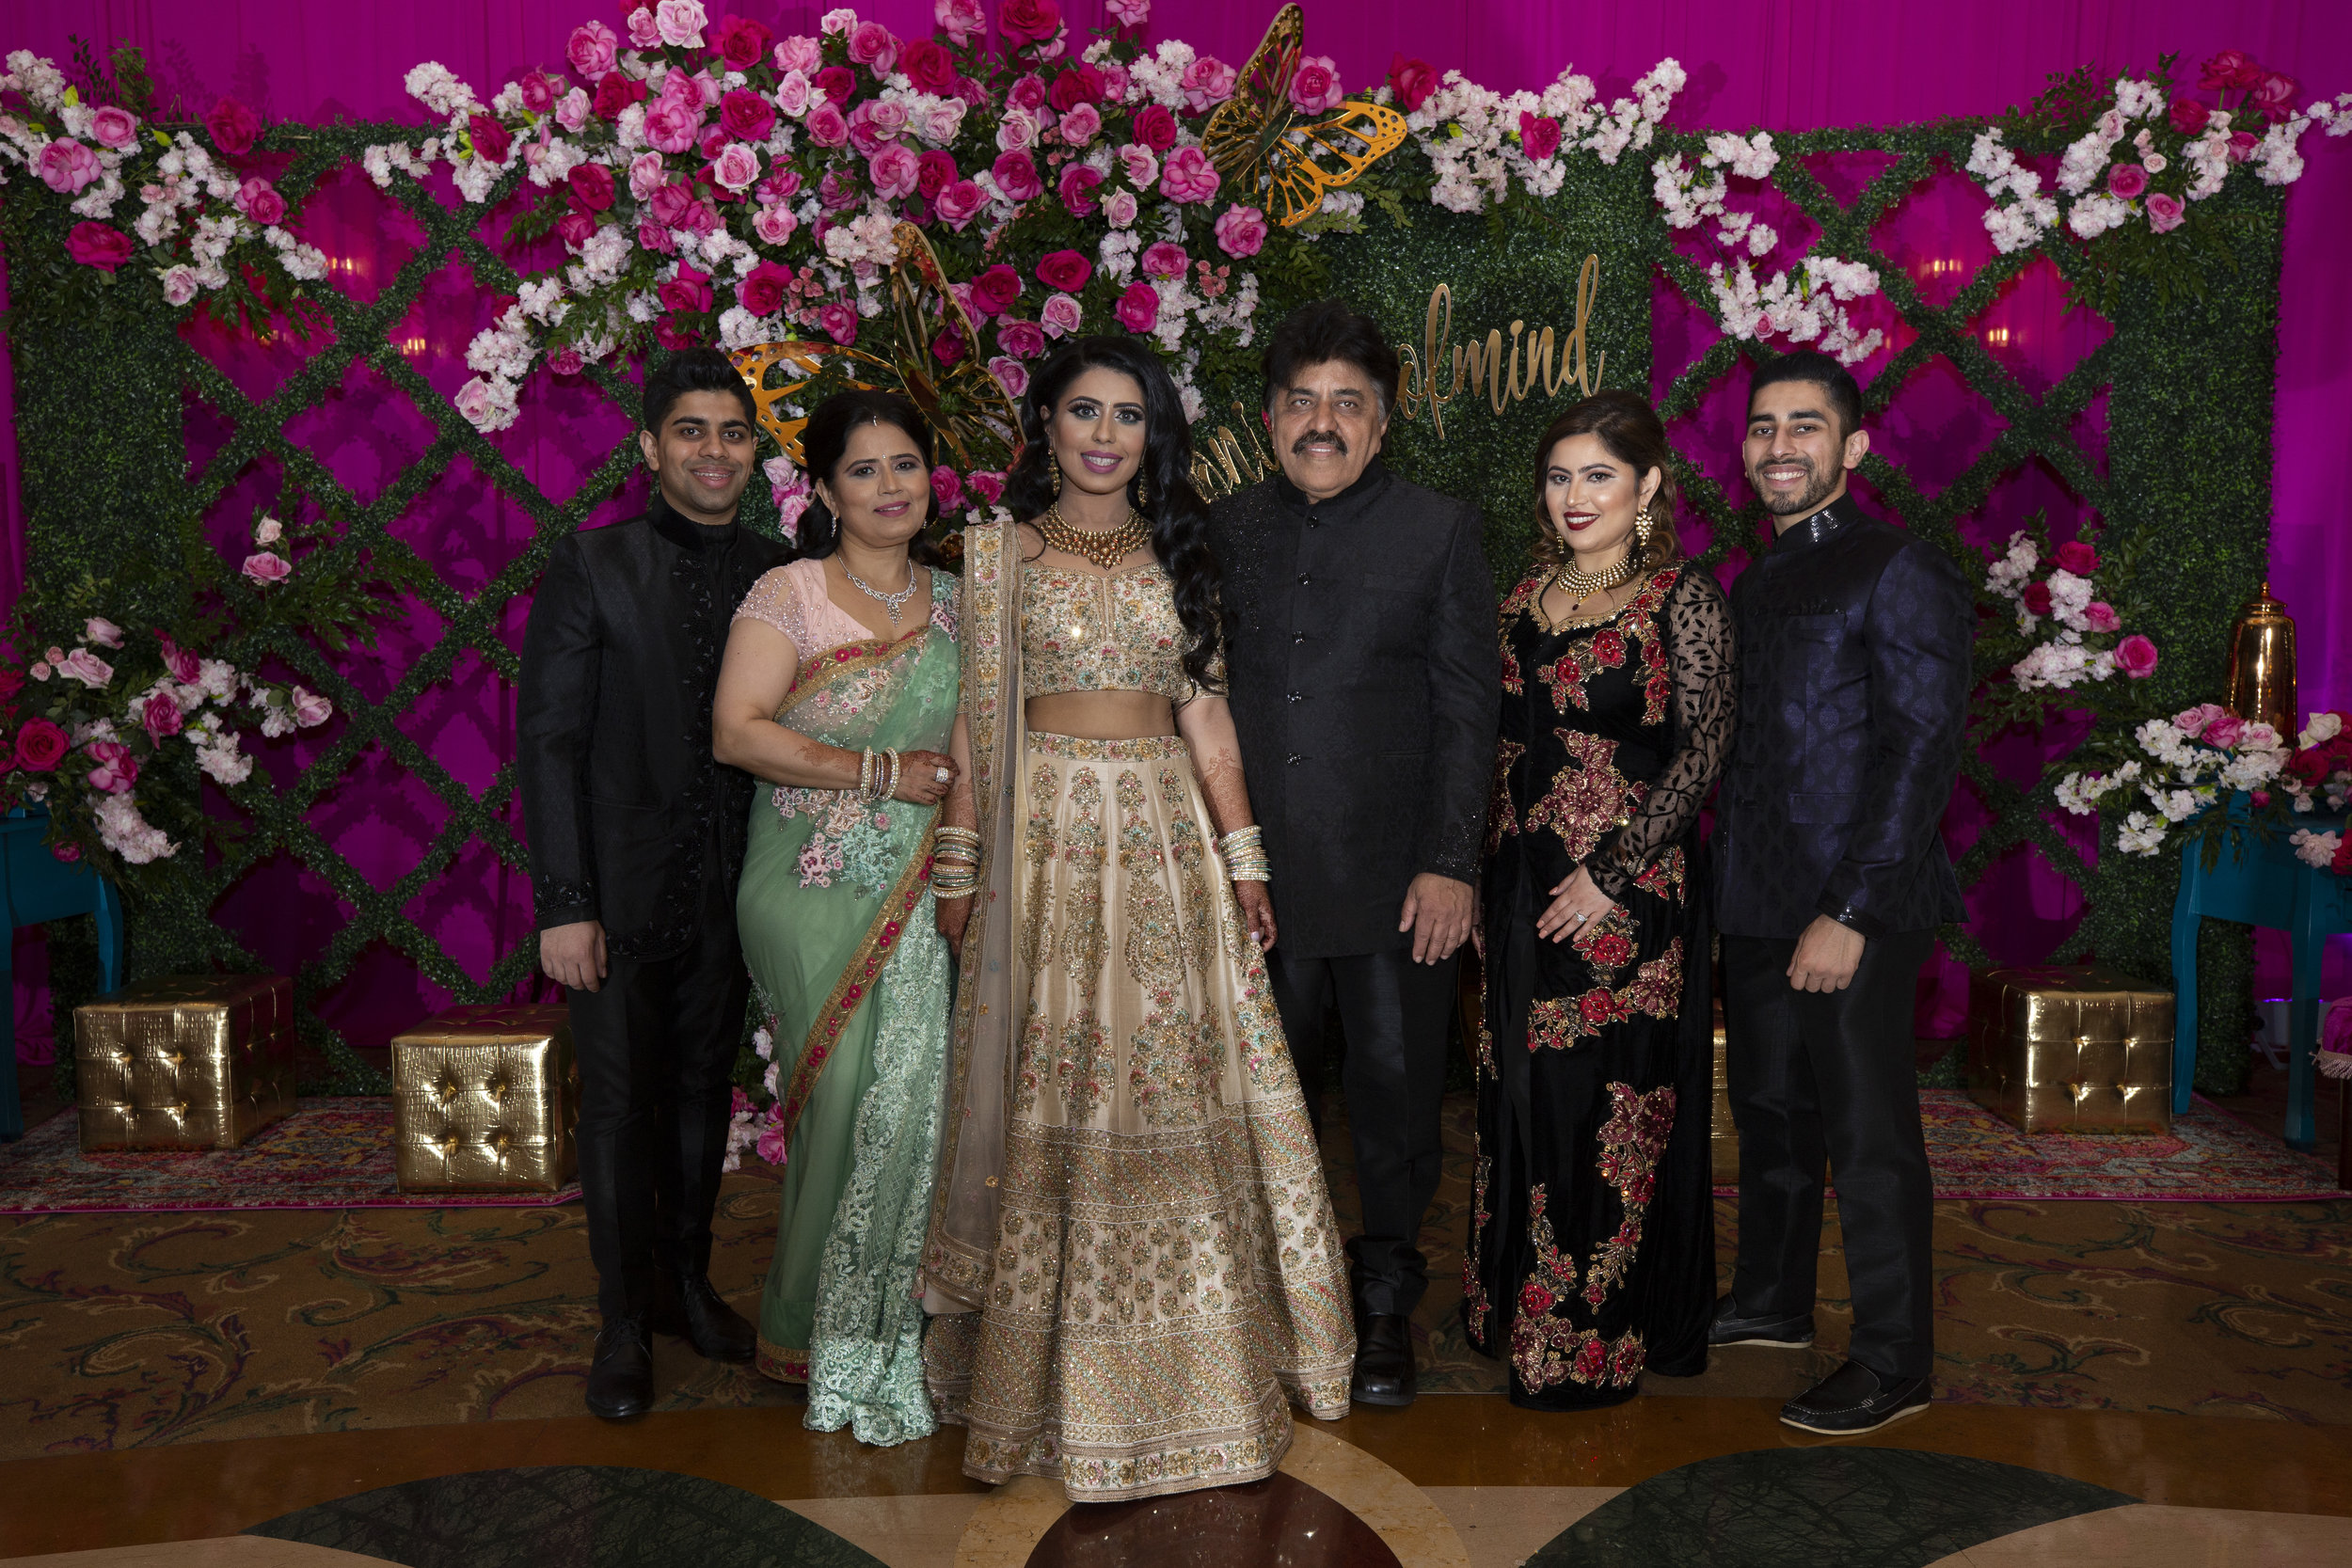 INDIAN WEDDING BRIDE FAMILY.JPG